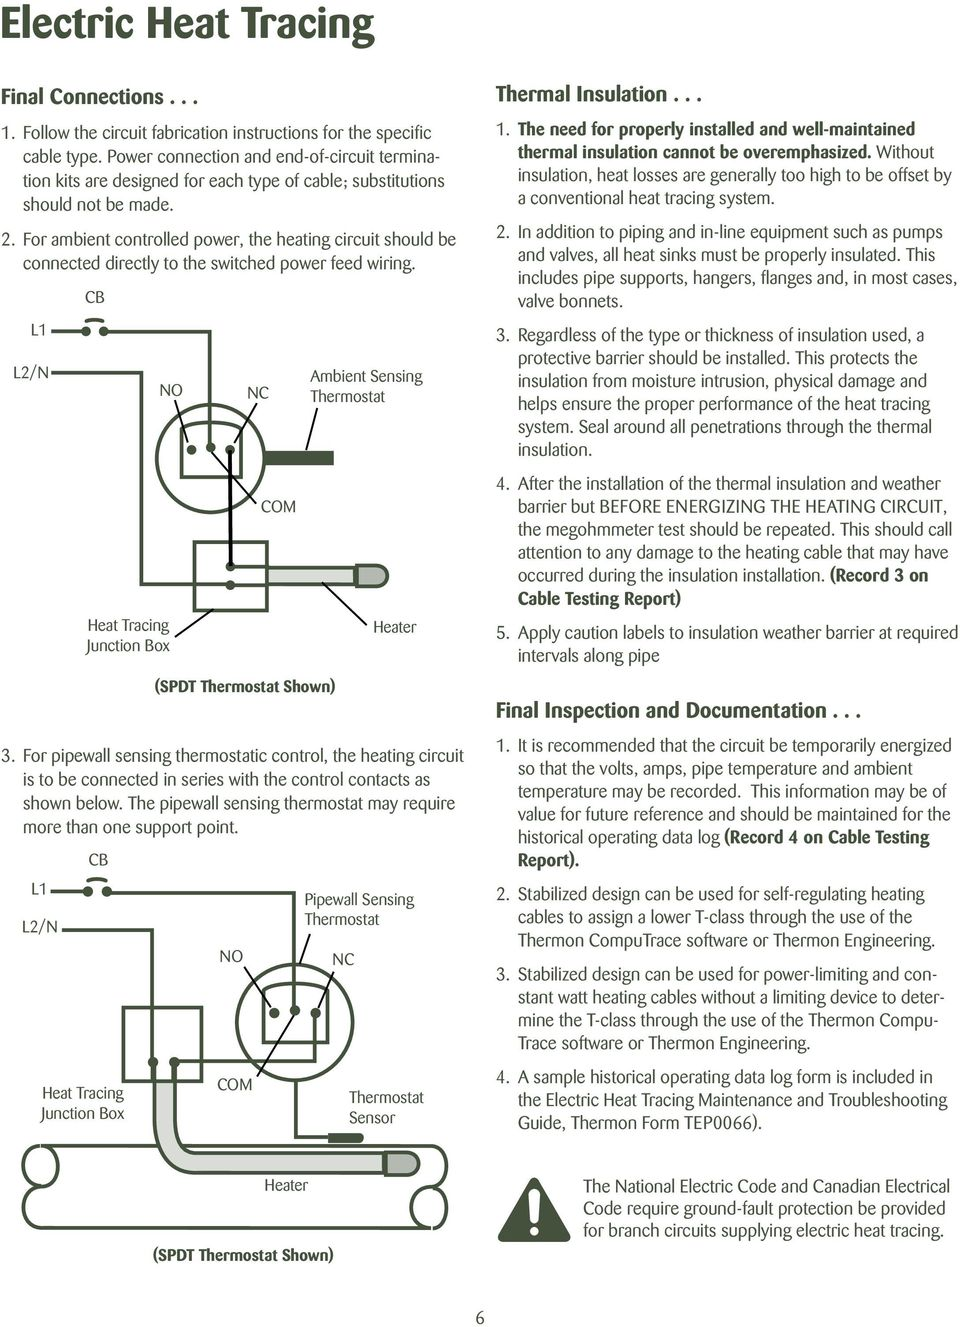 Electric Heat Tracing Installation Procedures Pdf Electrical Wiring For Ambient Controlled Power The Heating Circuit Should Be Connected Directly To Switched